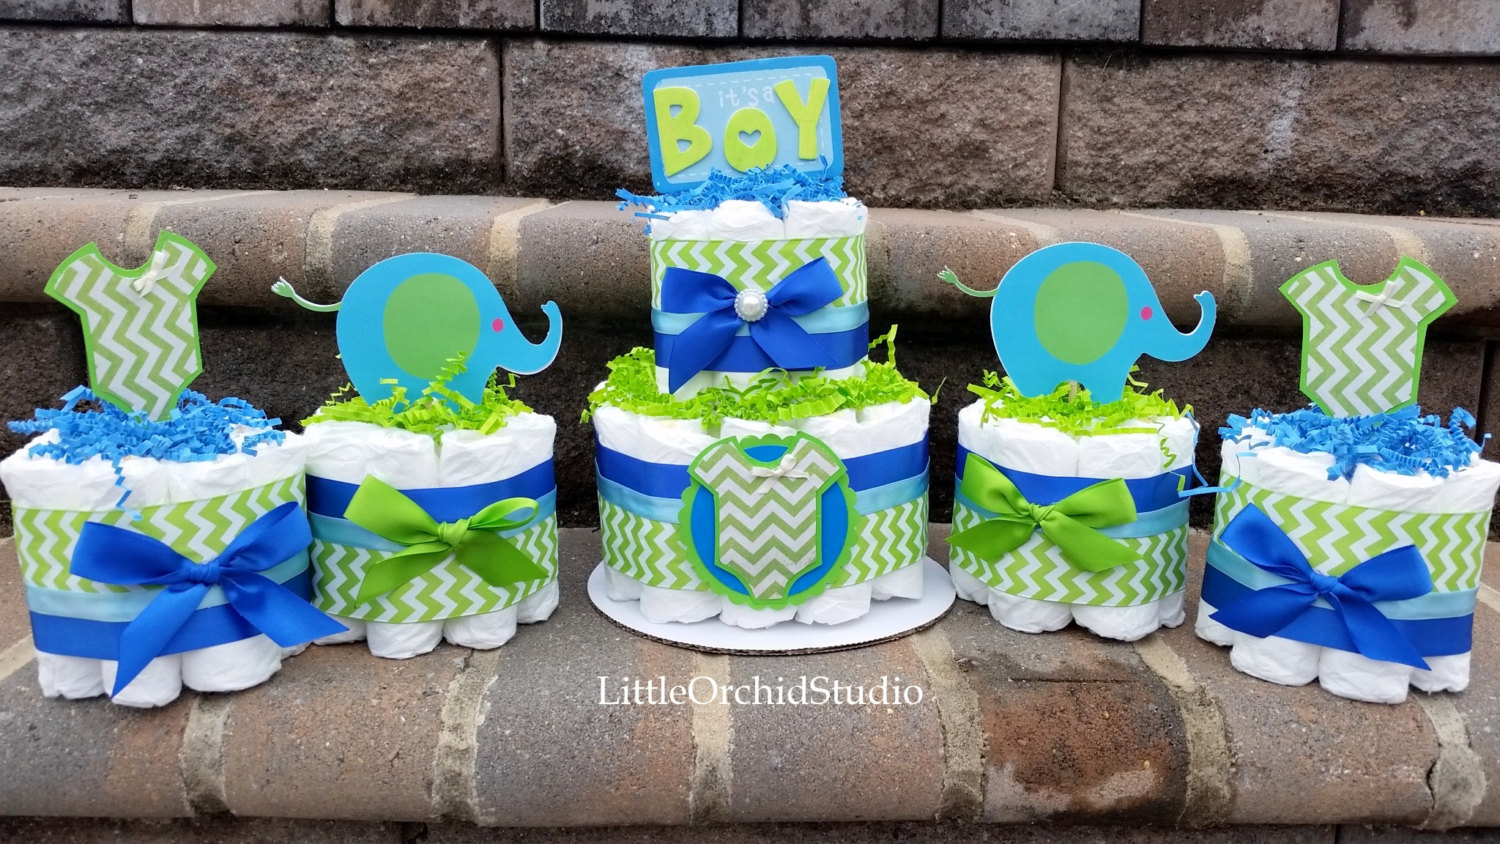 Amazing Green And Blue Baby Shower Blue And Green Baby Shower Cake regarding Beautiful Blue And Green Baby Shower